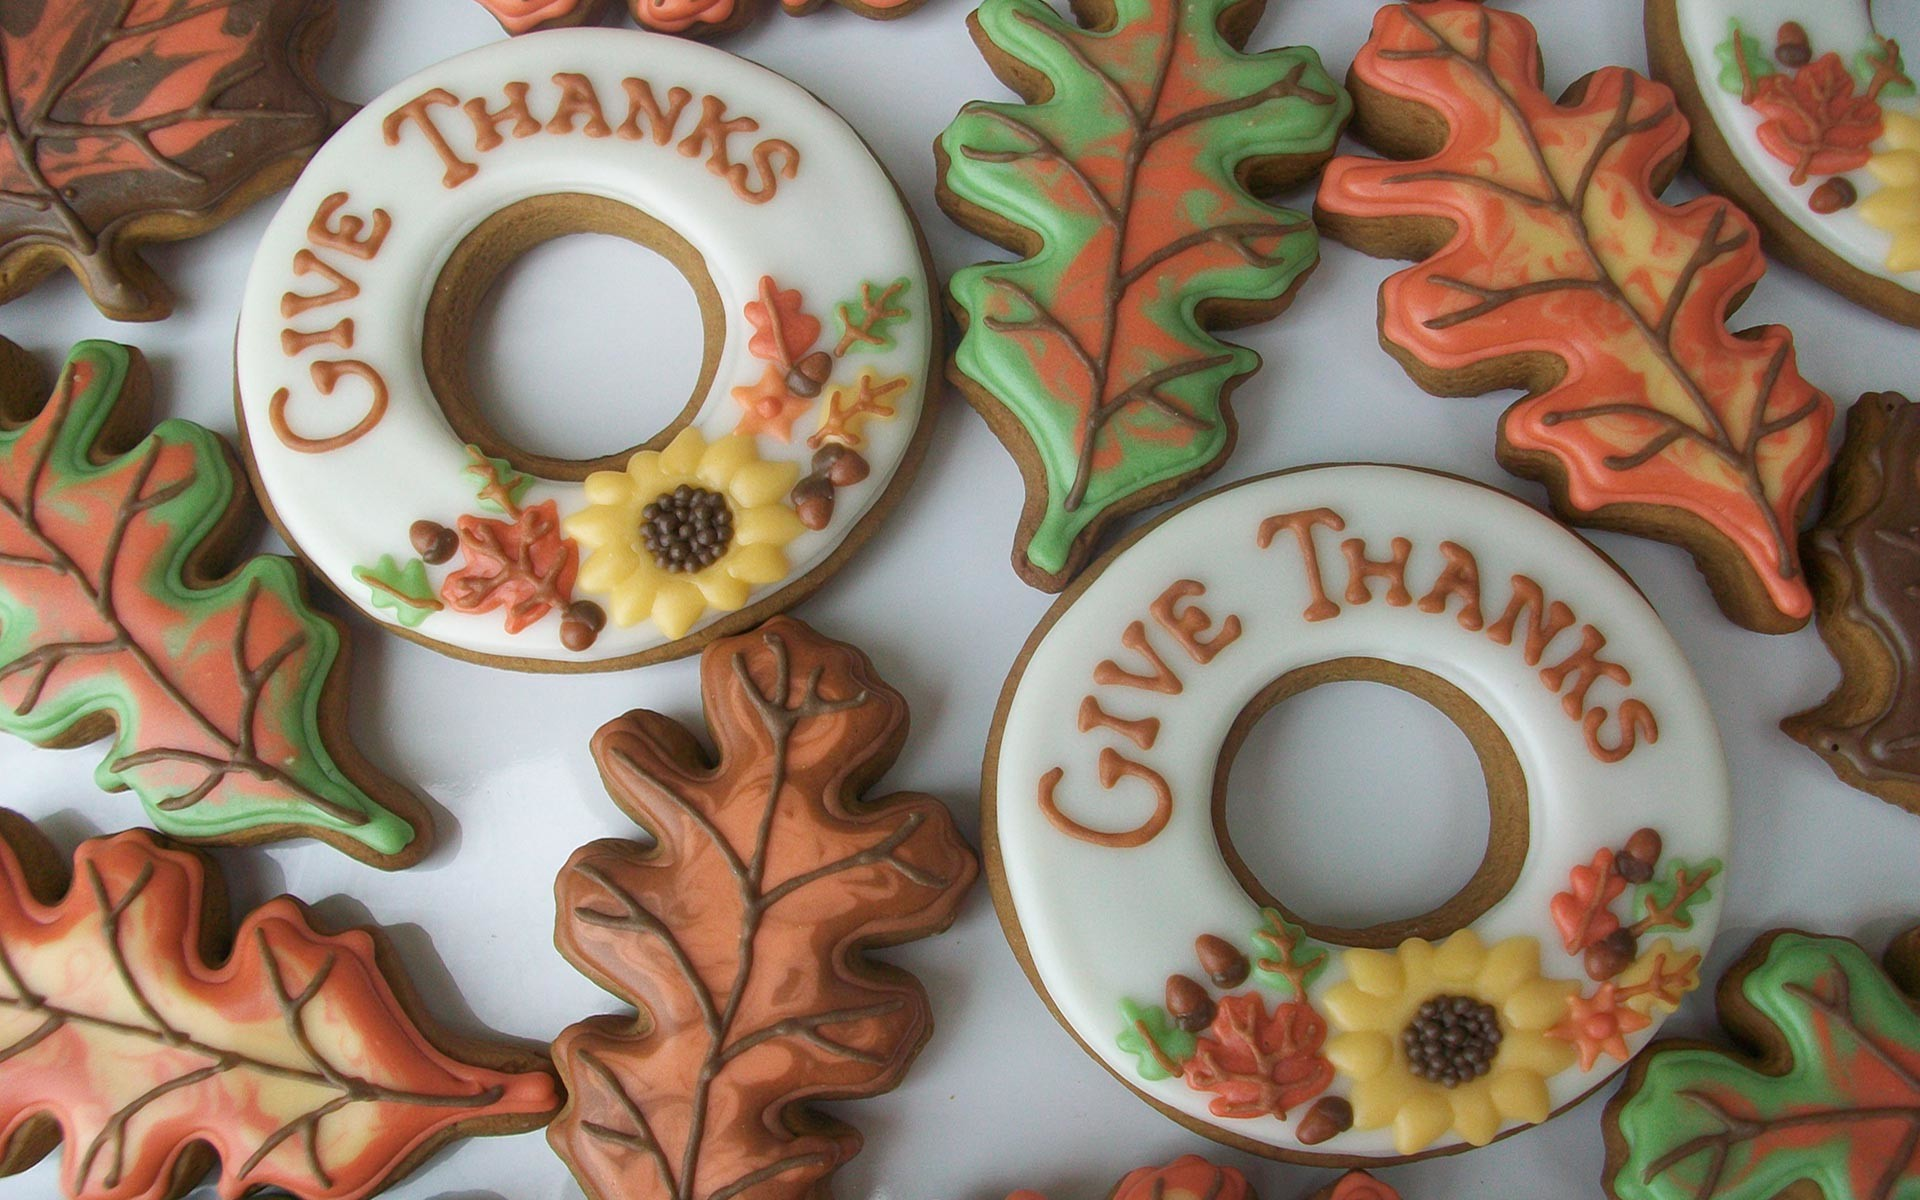 Happy-Thanksgiving-Pictures-2014-Give-Thanks